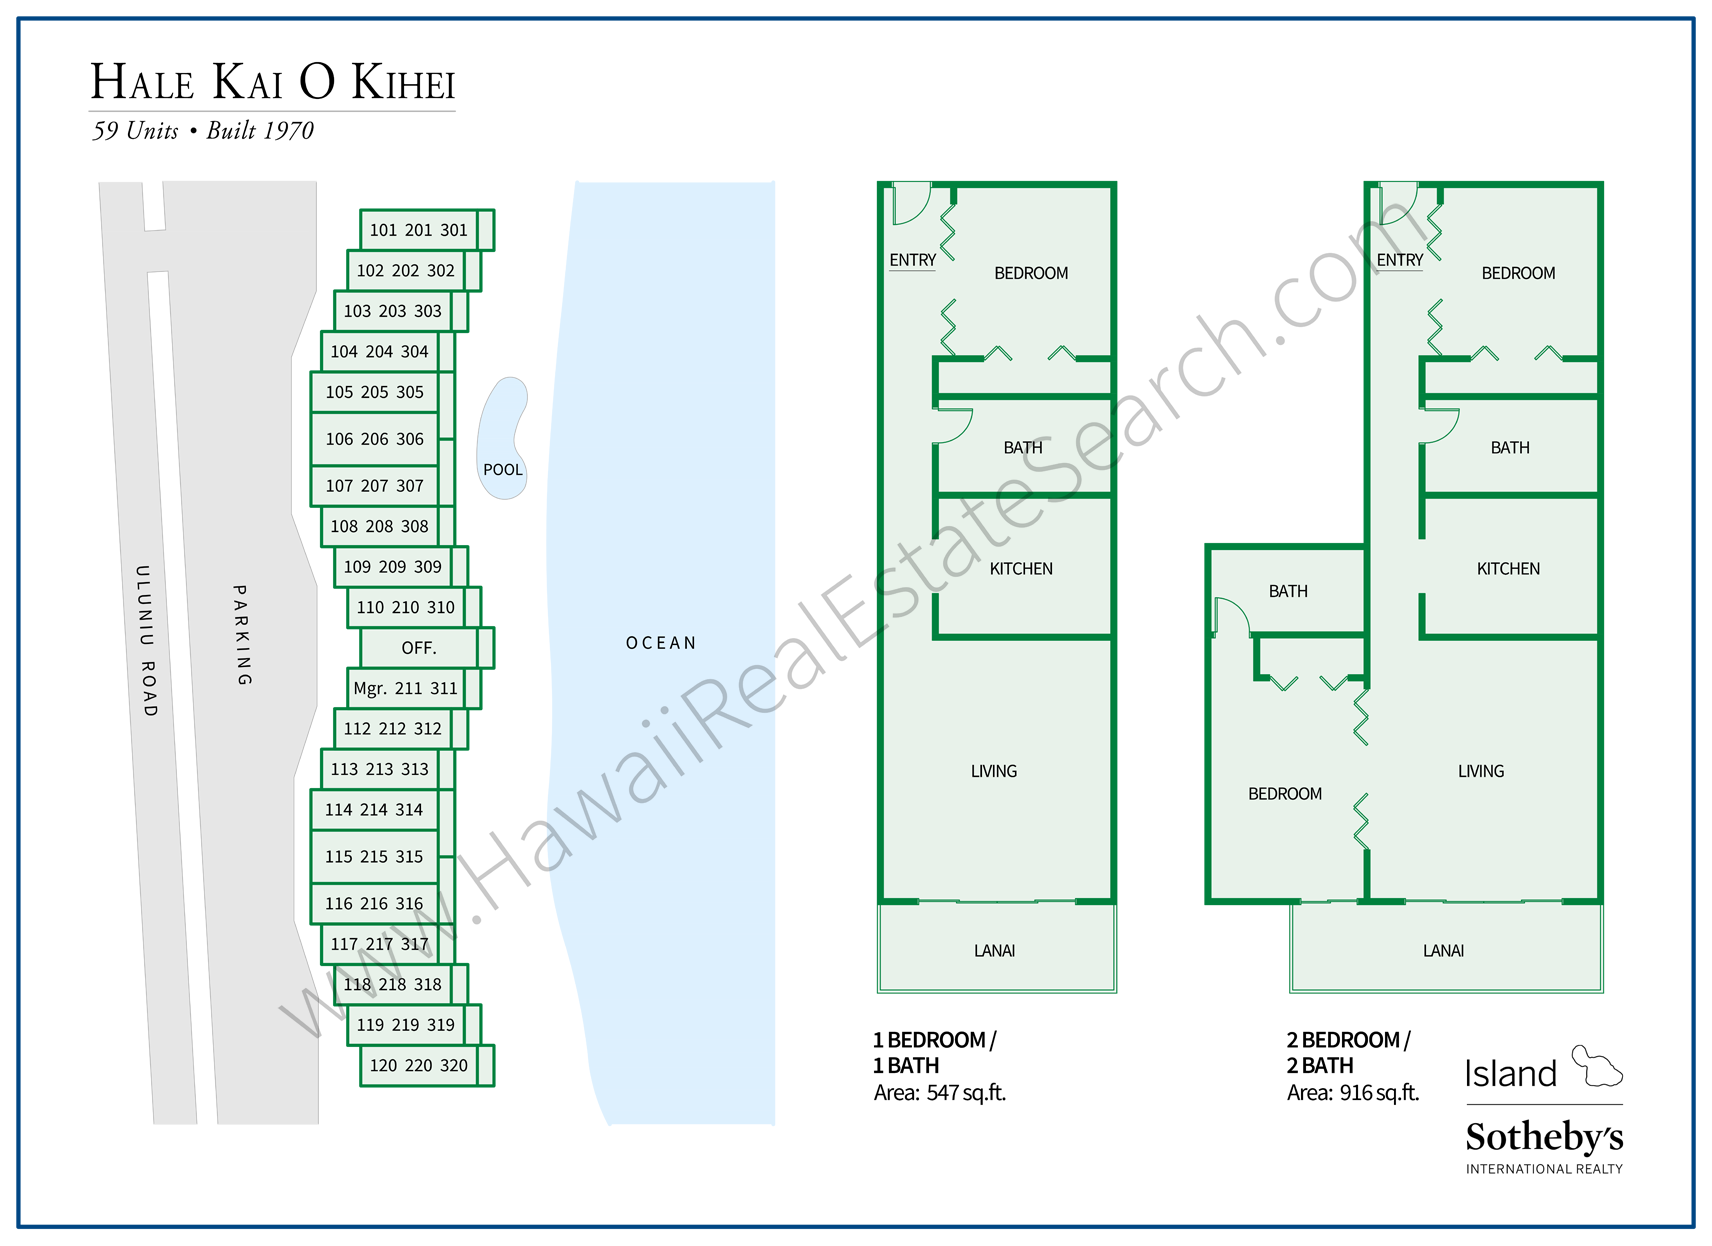 hale kai o kihei map and floor plans